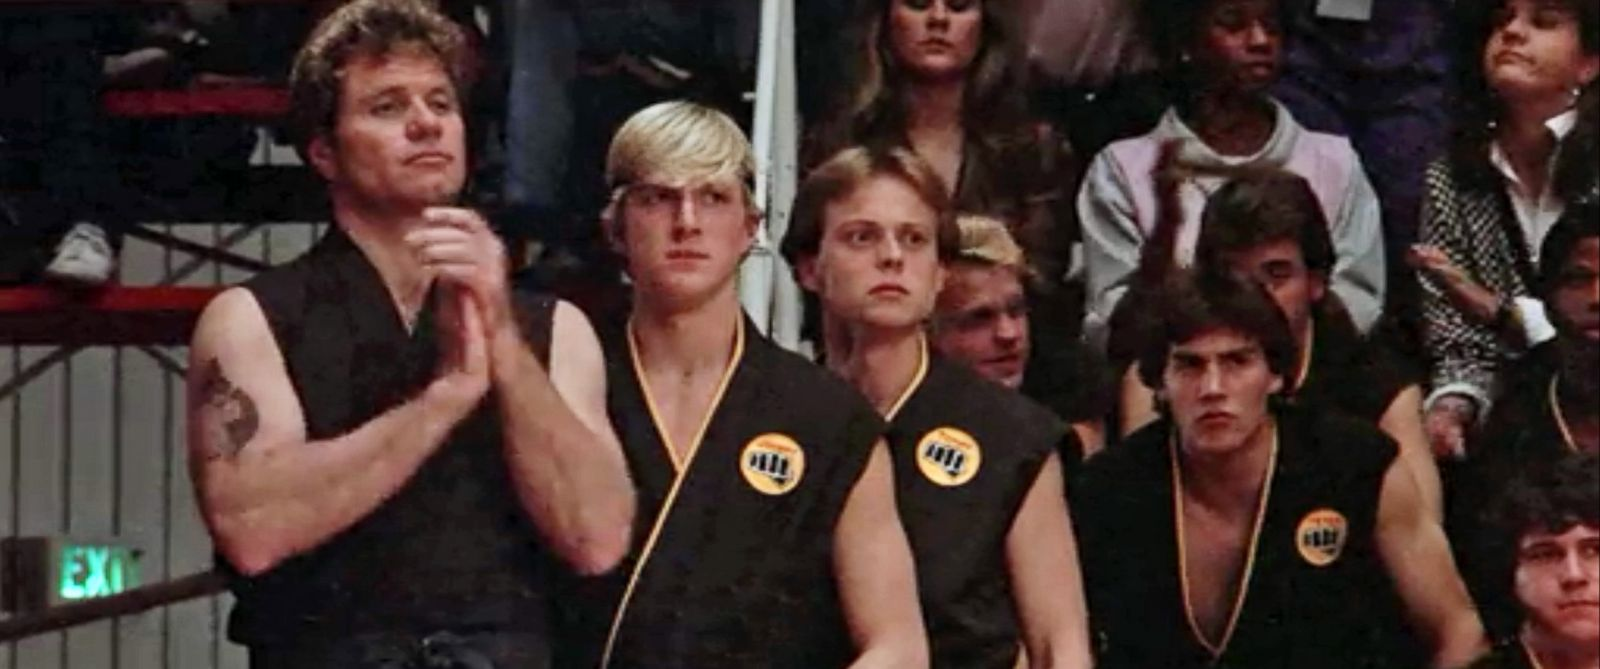 ht_karate_kid_cobra_jc_141009_31x13_1600